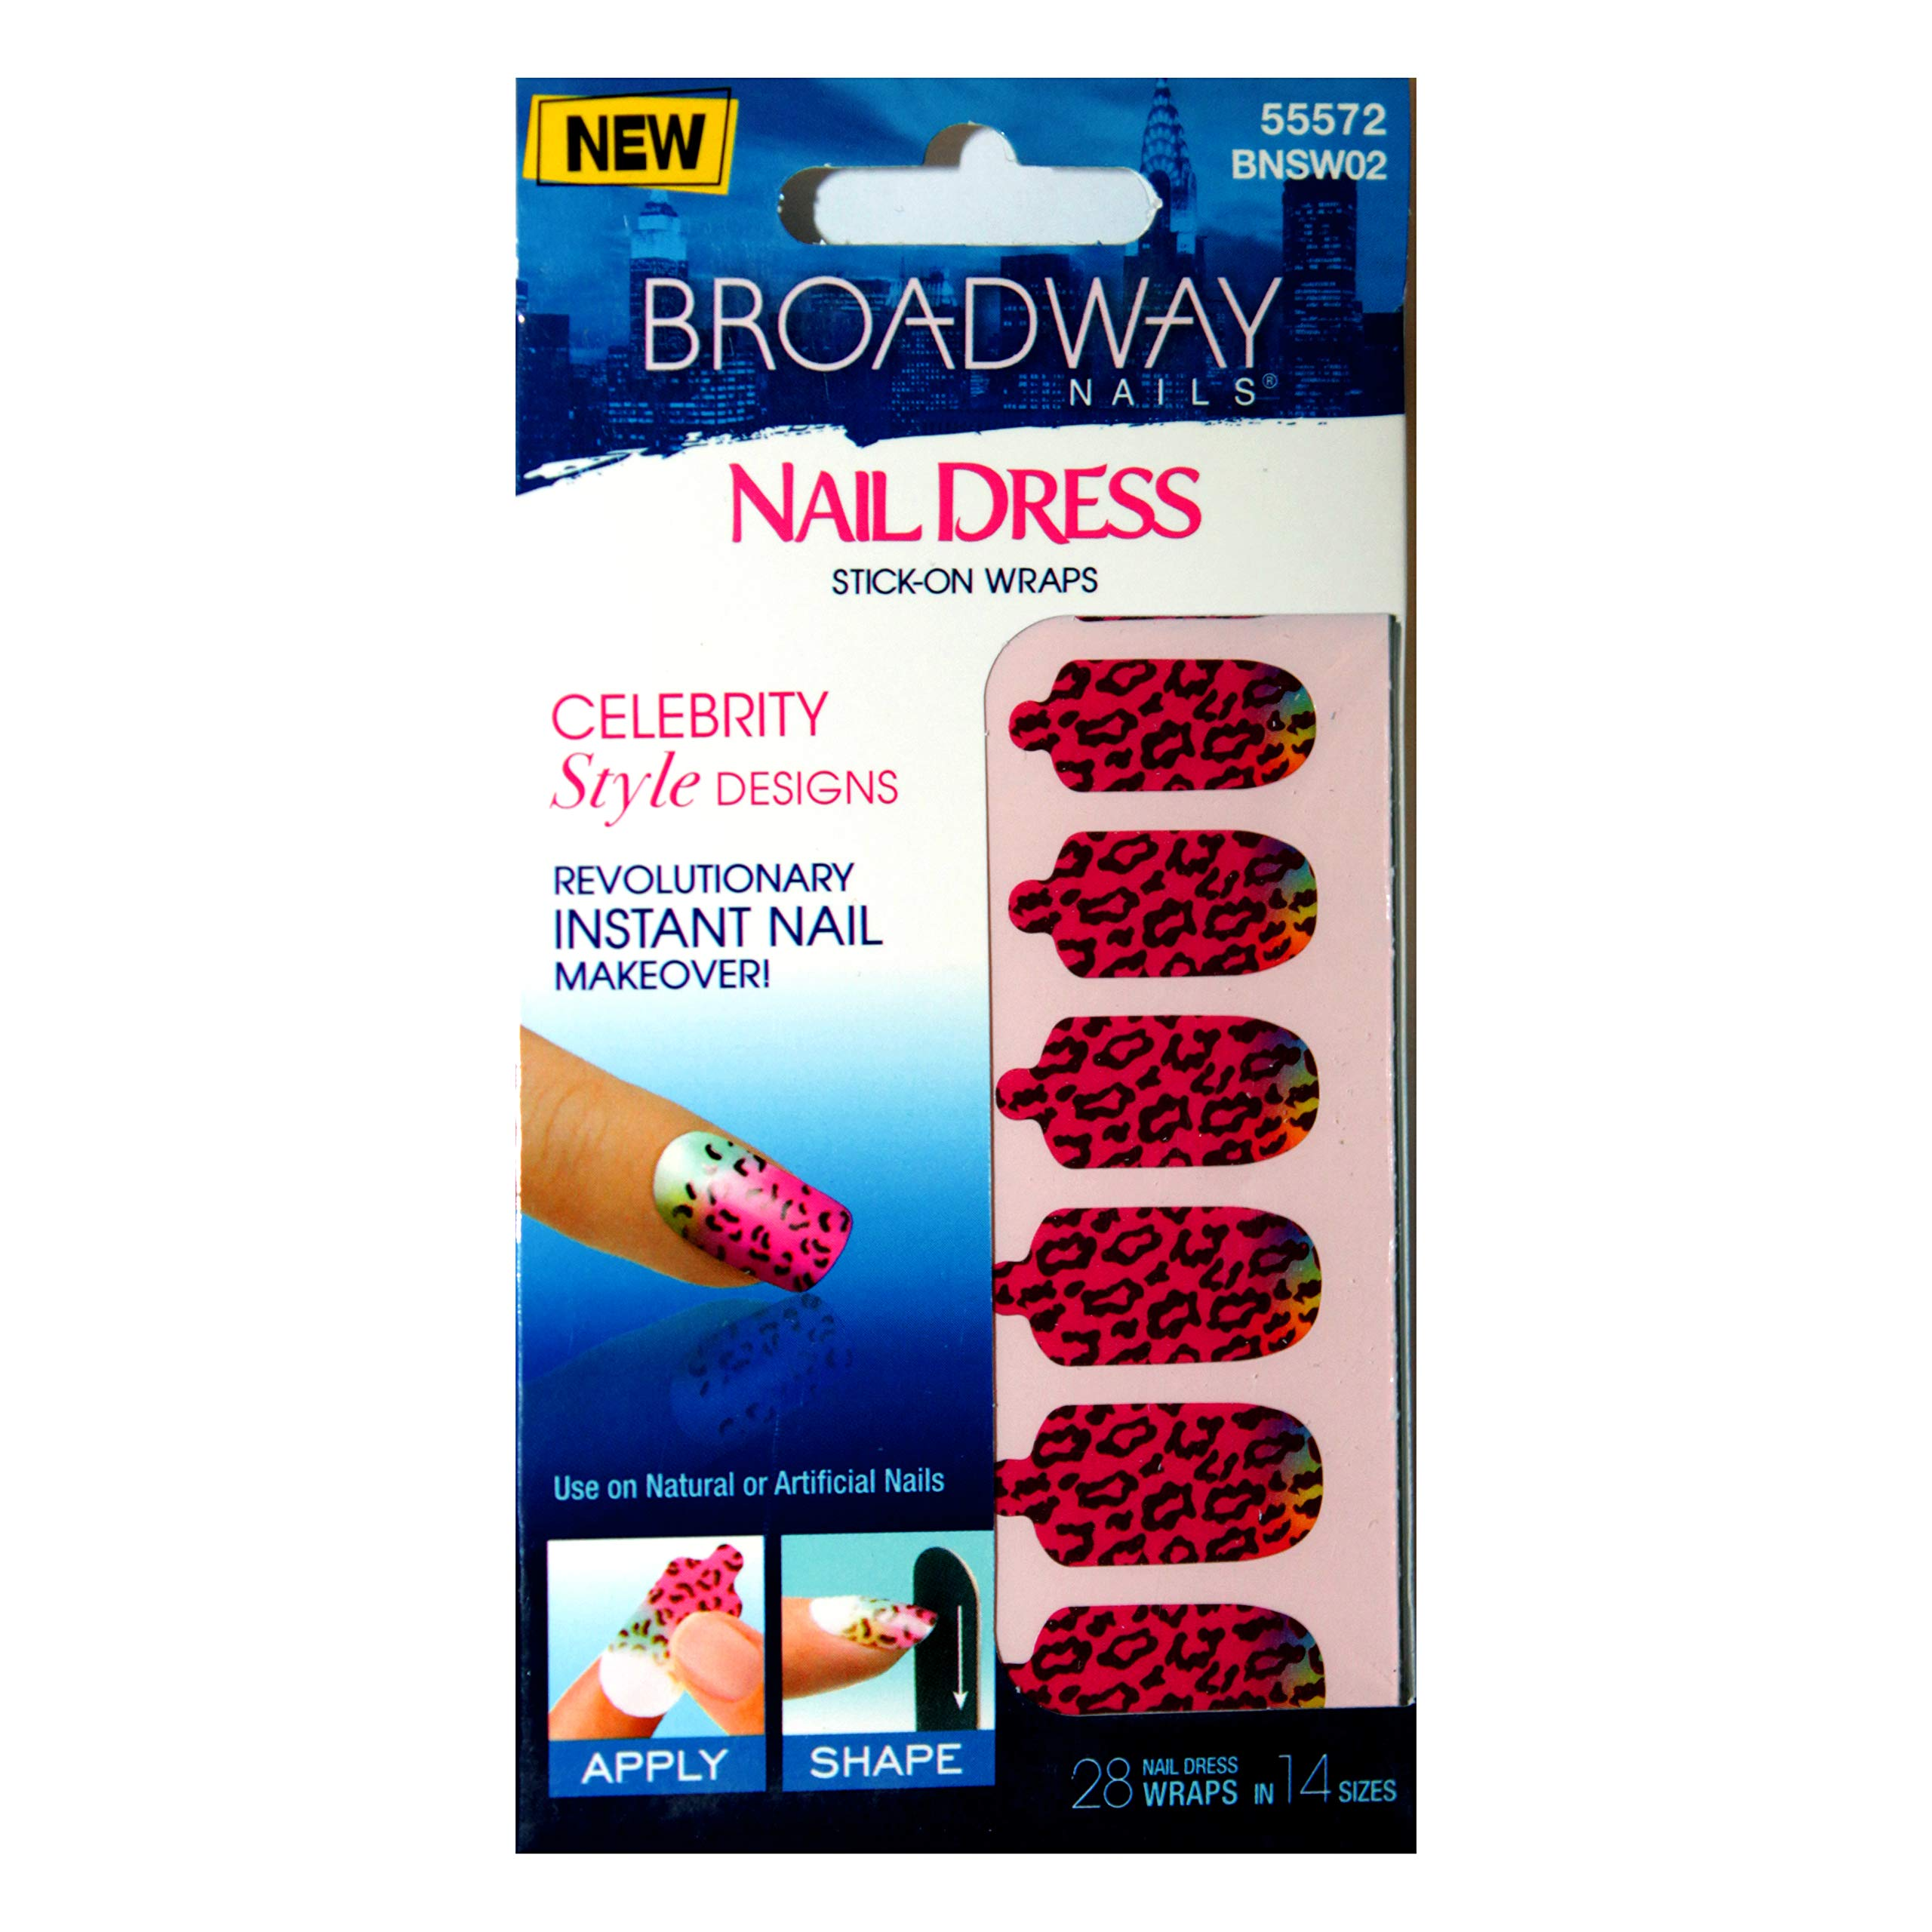 Broadway Nail (1) Pack Nail Dress Stick-On Wraps - Celebrity Style Designs - Instant Nail Makeover - 28 Wraps per Pack - Fuchsia Leopard Pattern with Yellow, Green & Blue Moon #55572 by Broadway nail